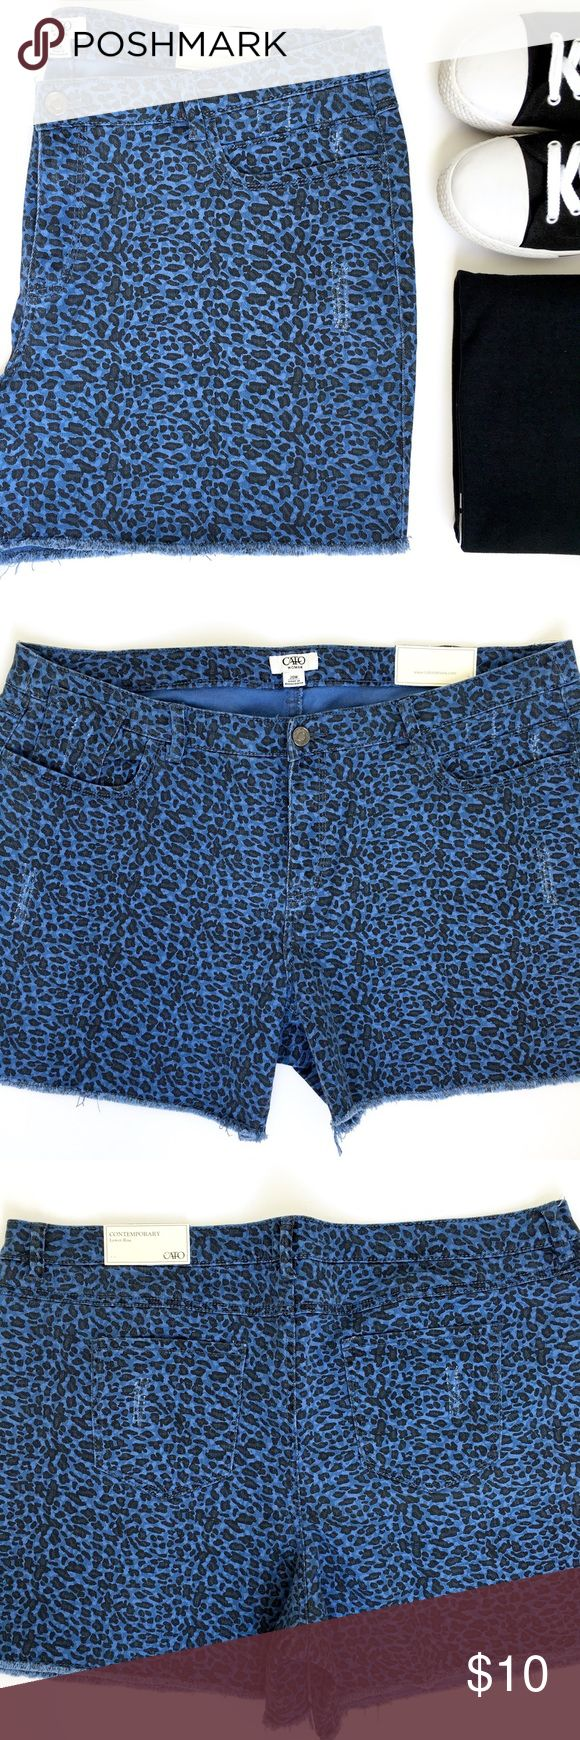 """Cato Blue Leopard Shorts FINAL PRICE!! Cute animal print shorts! They have a faded blue destructed style to them and front and back pockets. They say contemporary lower rise, but they sit at your natural waist line. See rise measurements. Material is cotton/spandex blend.  Size: 20W Inseam: 5"""" Rise: 11"""" Waist: 41"""" - Stretchy  New with tags. Cato Shorts"""